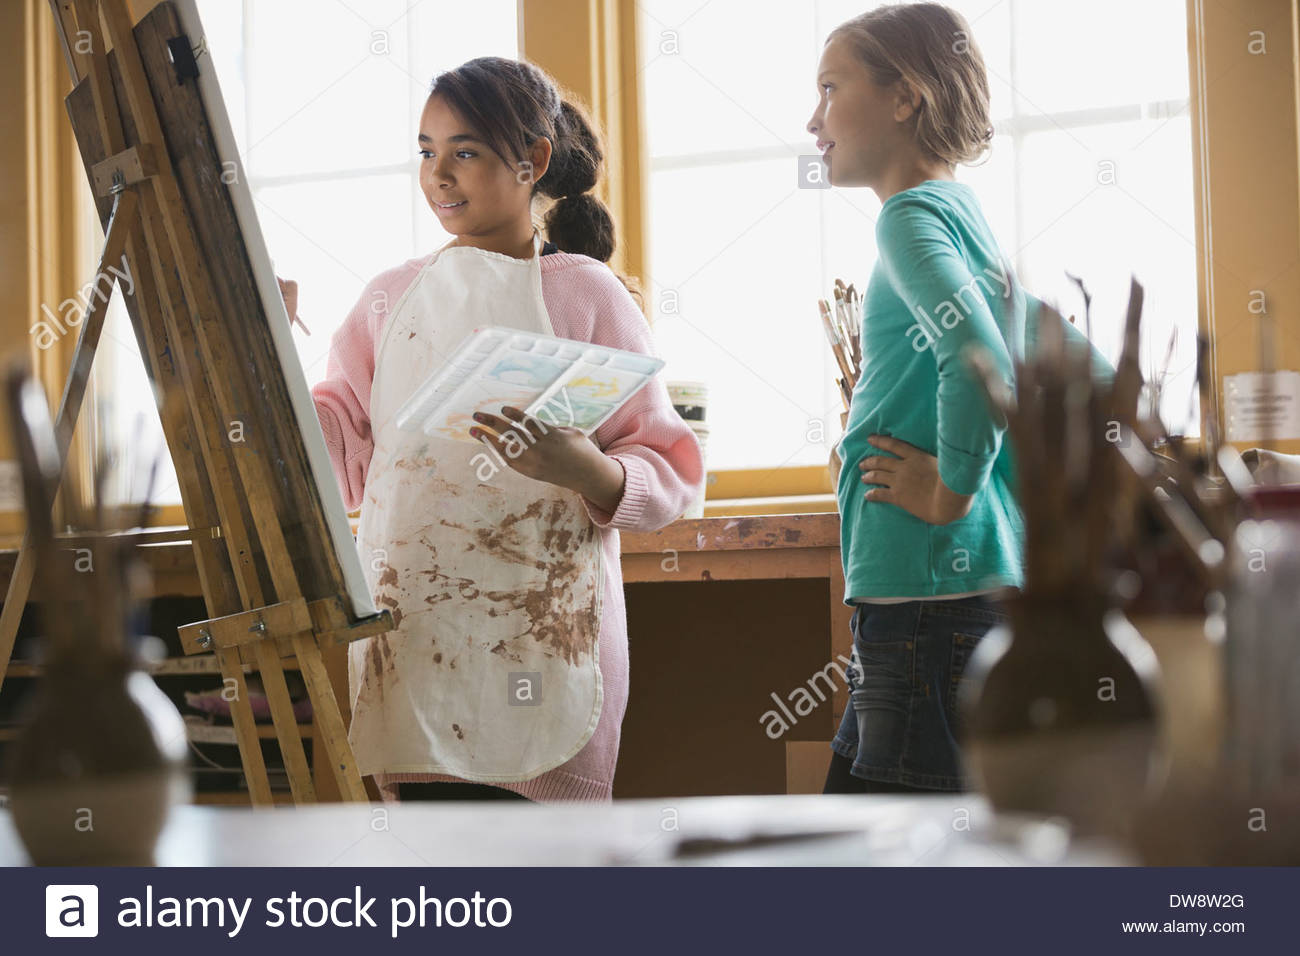 Friends in art class painting - Stock Image